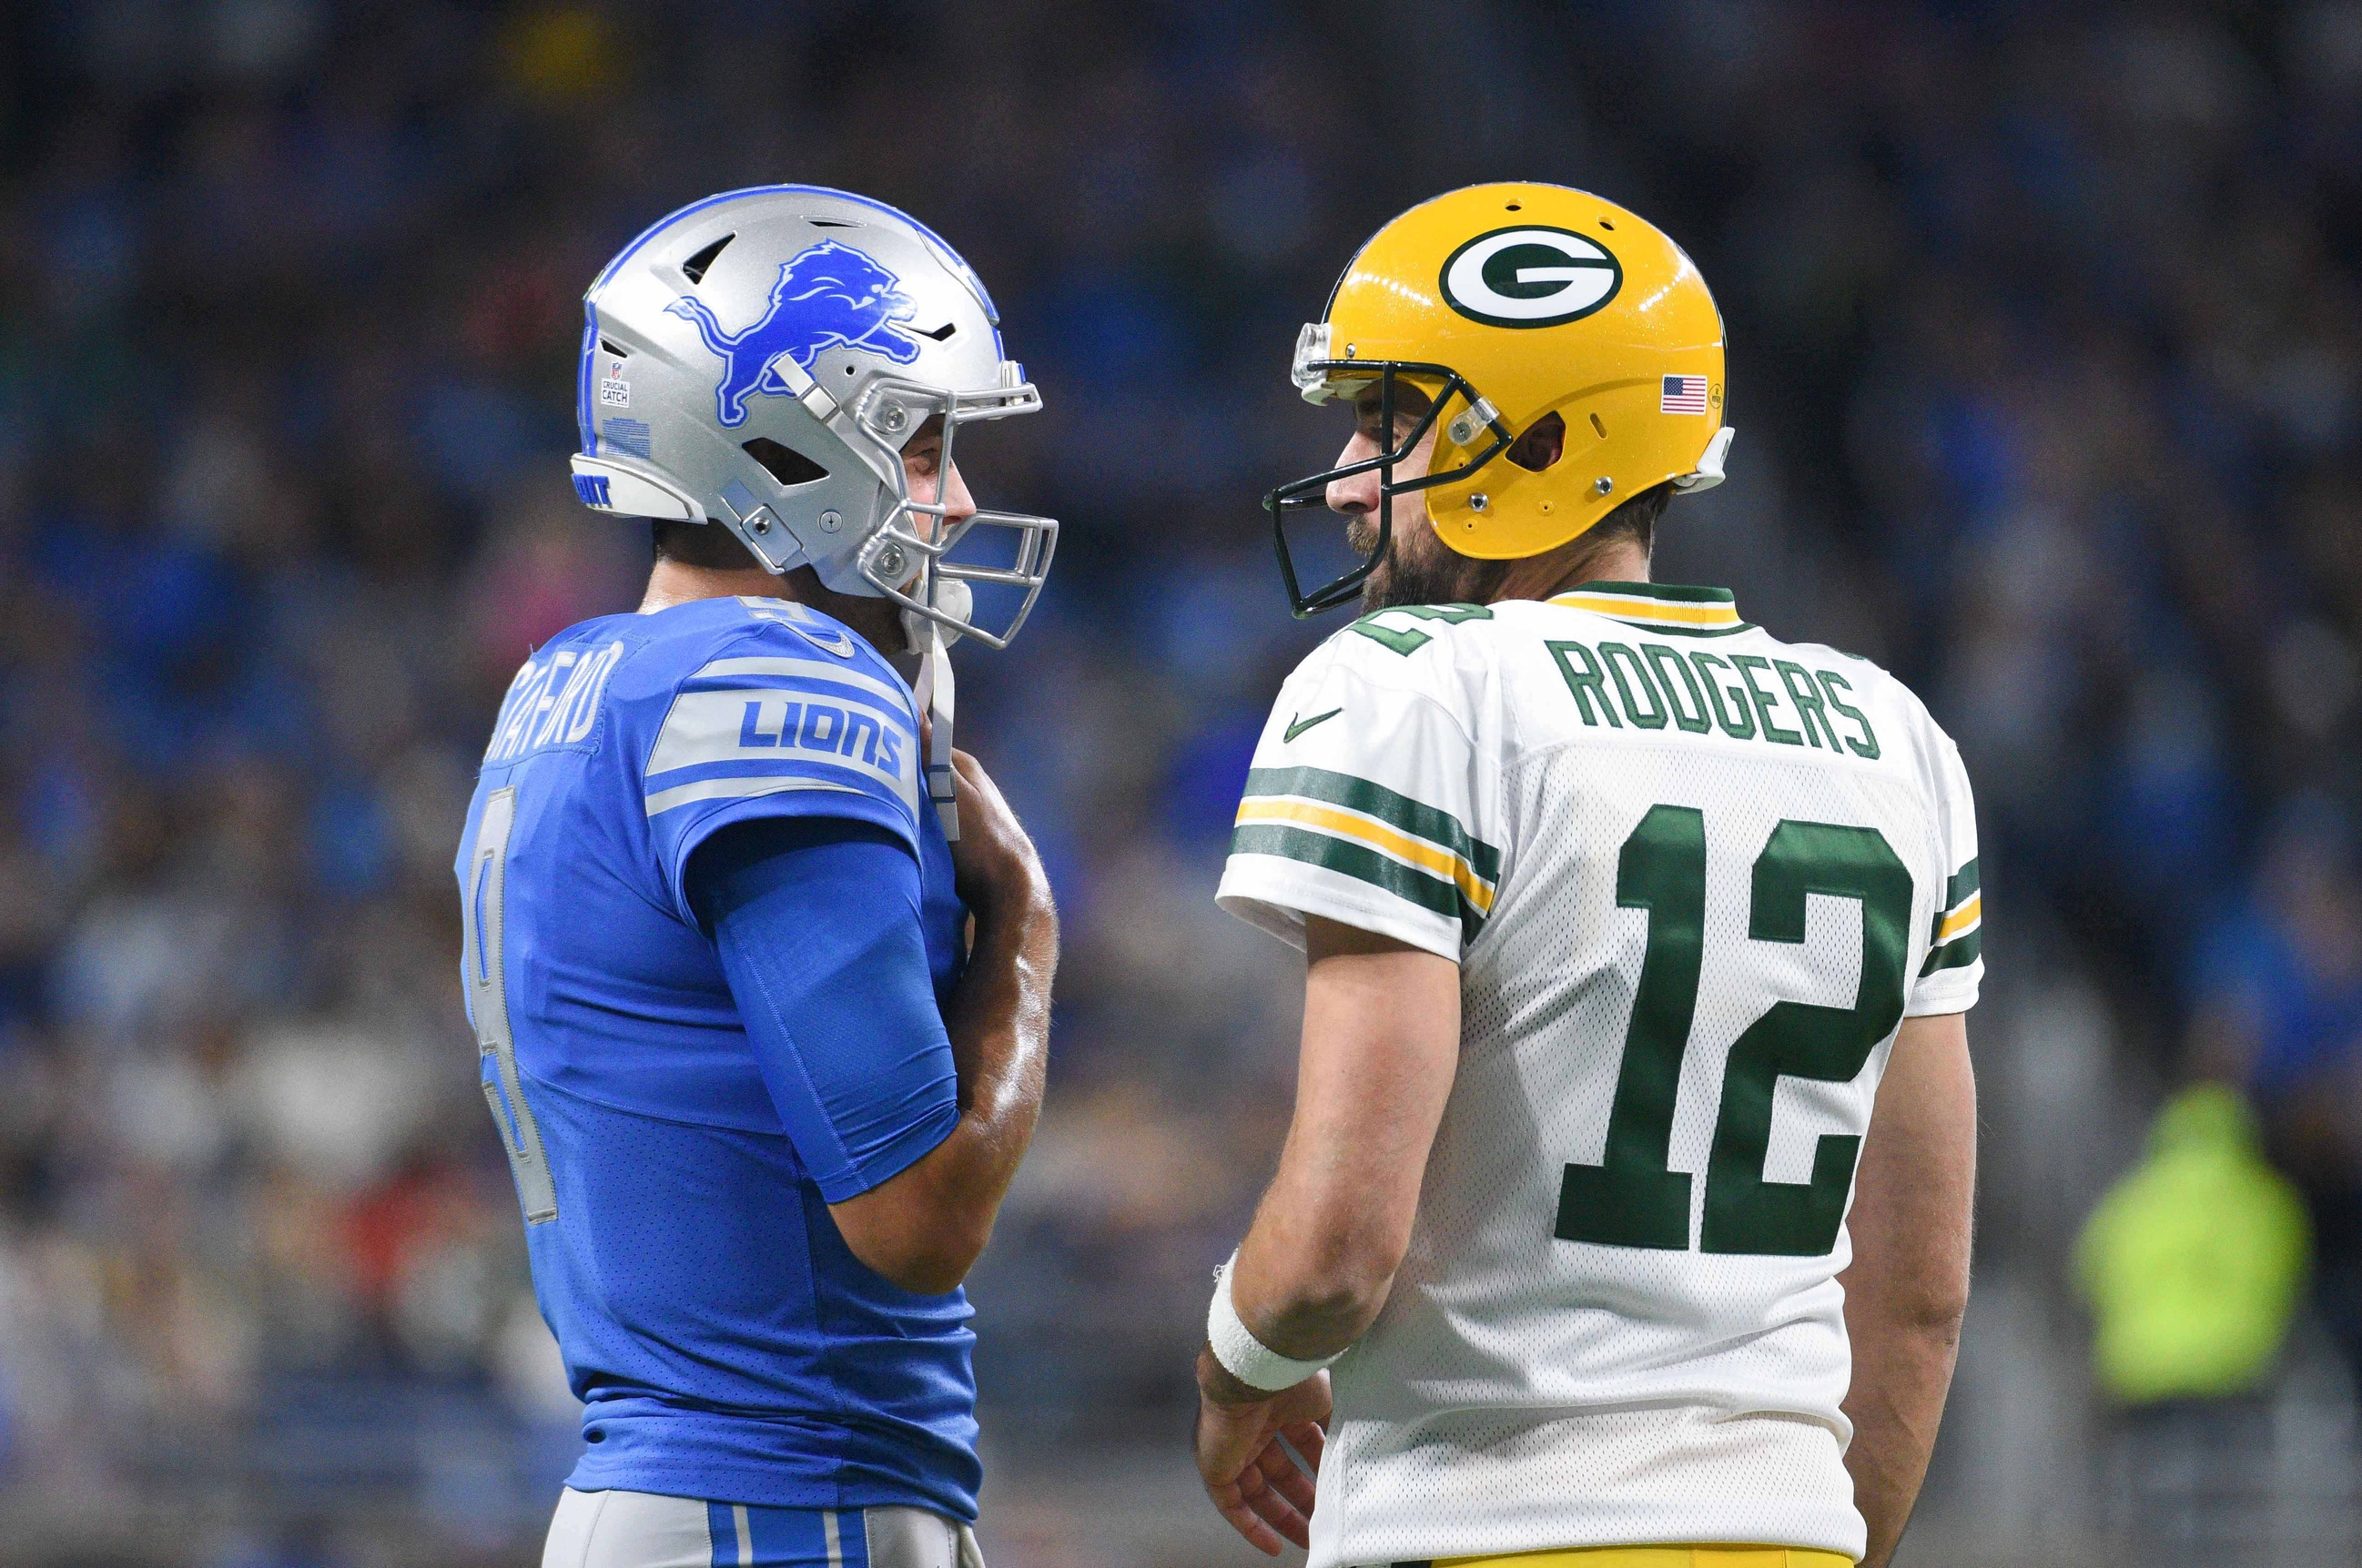 Buy or Sell: Matthew Stafford Is Better Than Aaron Rodgers